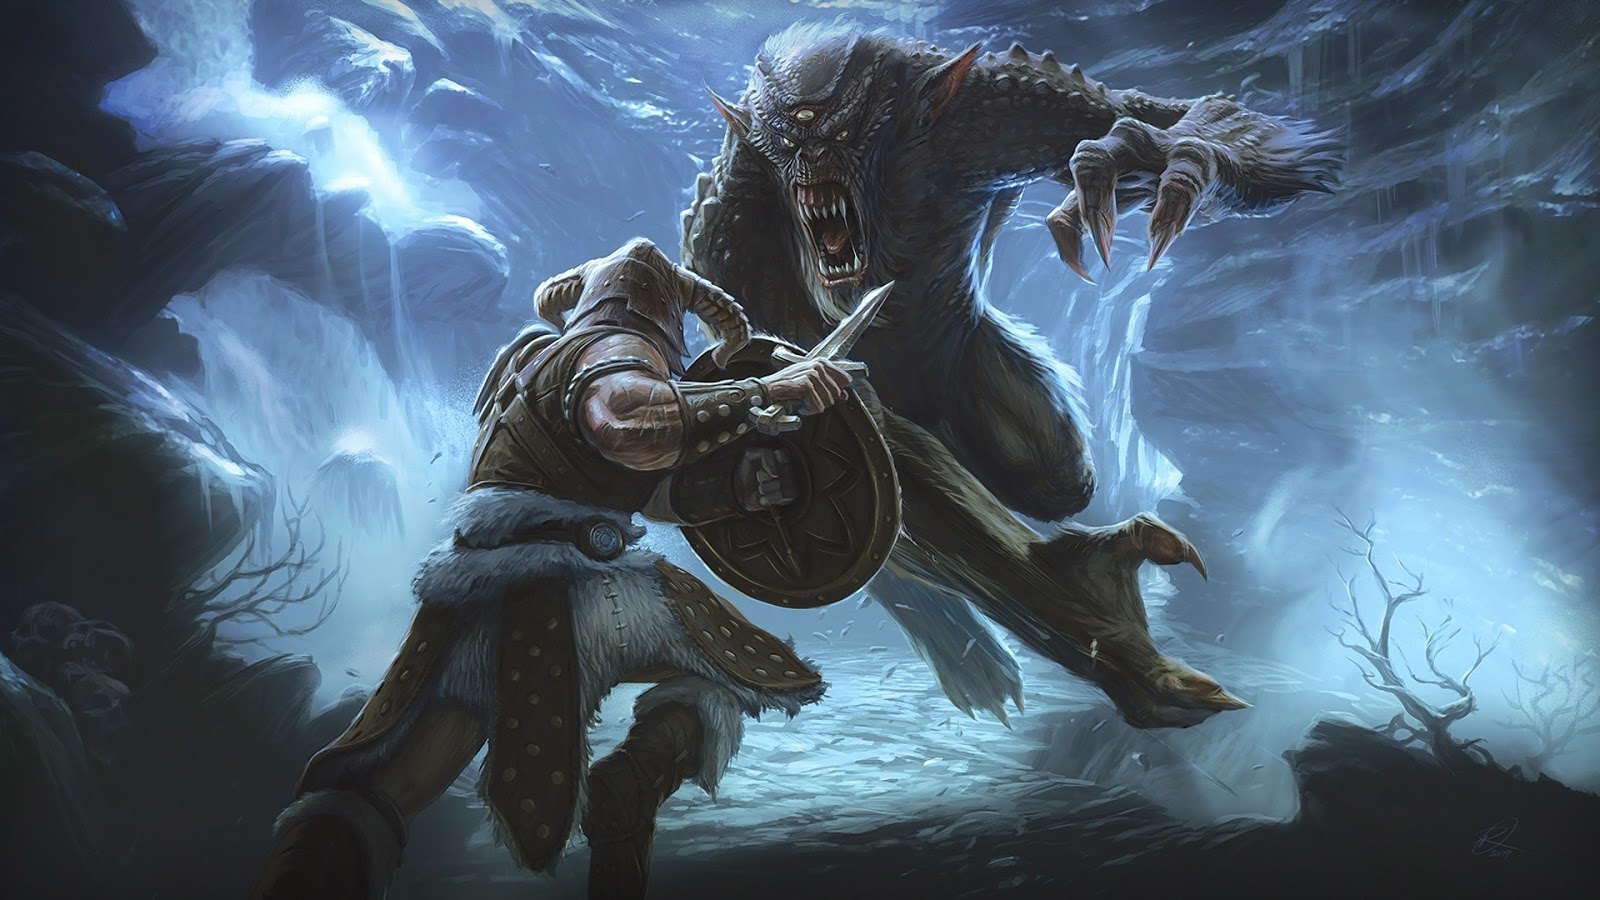 The Elder Scrolls HD & Widescreen Wallpaper 0.0620120880577426